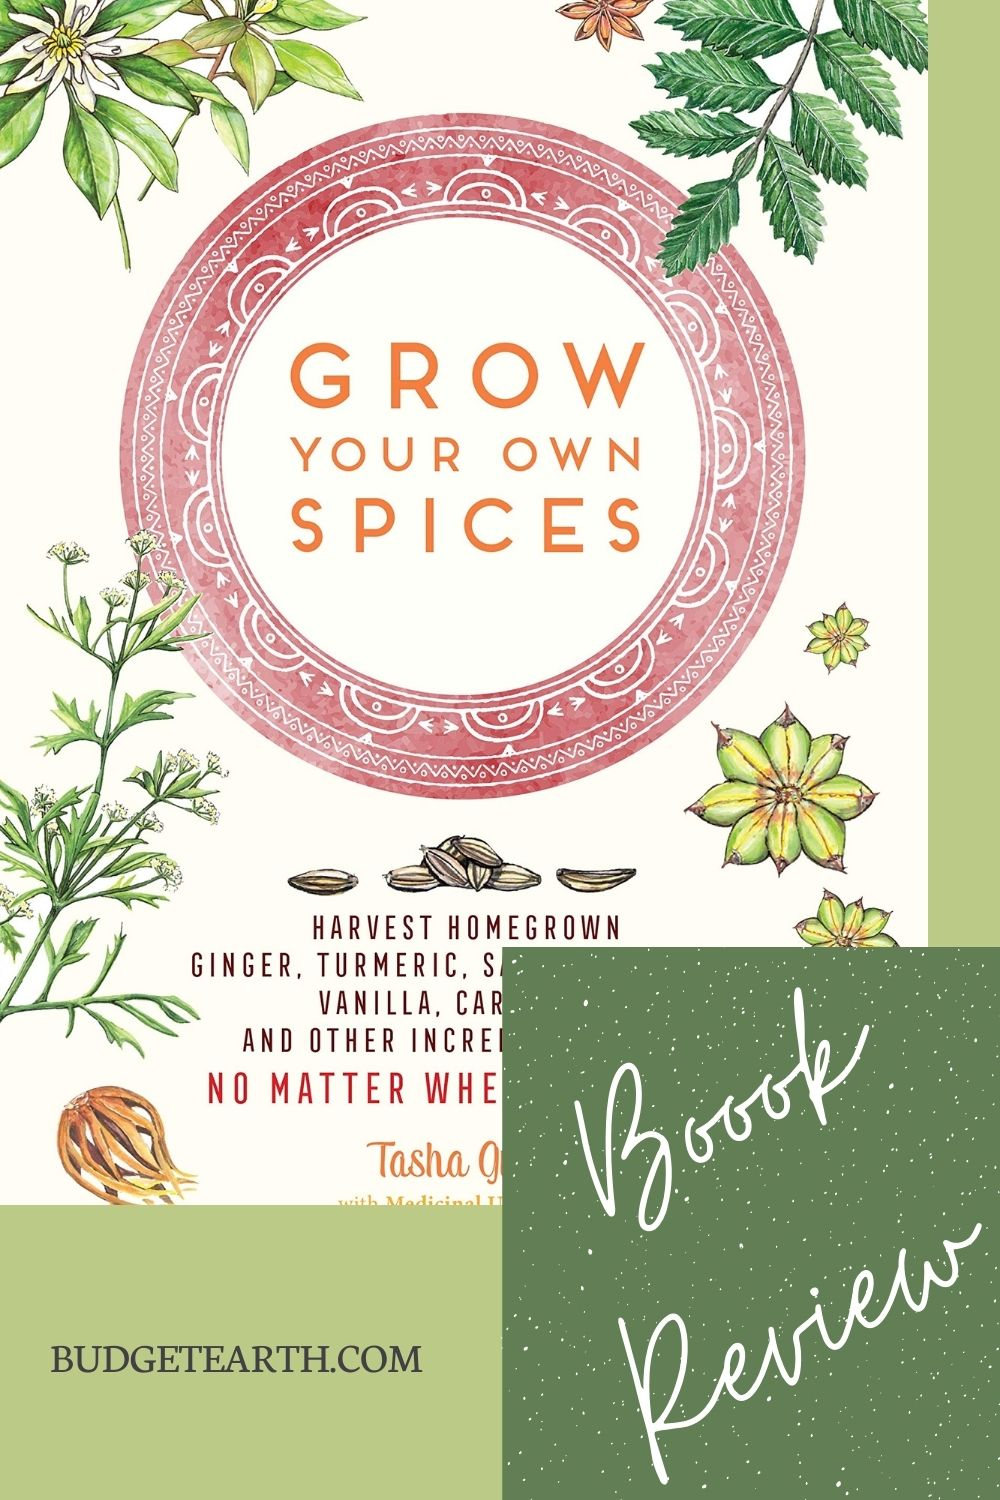 Grow Your Own Spices book cover image